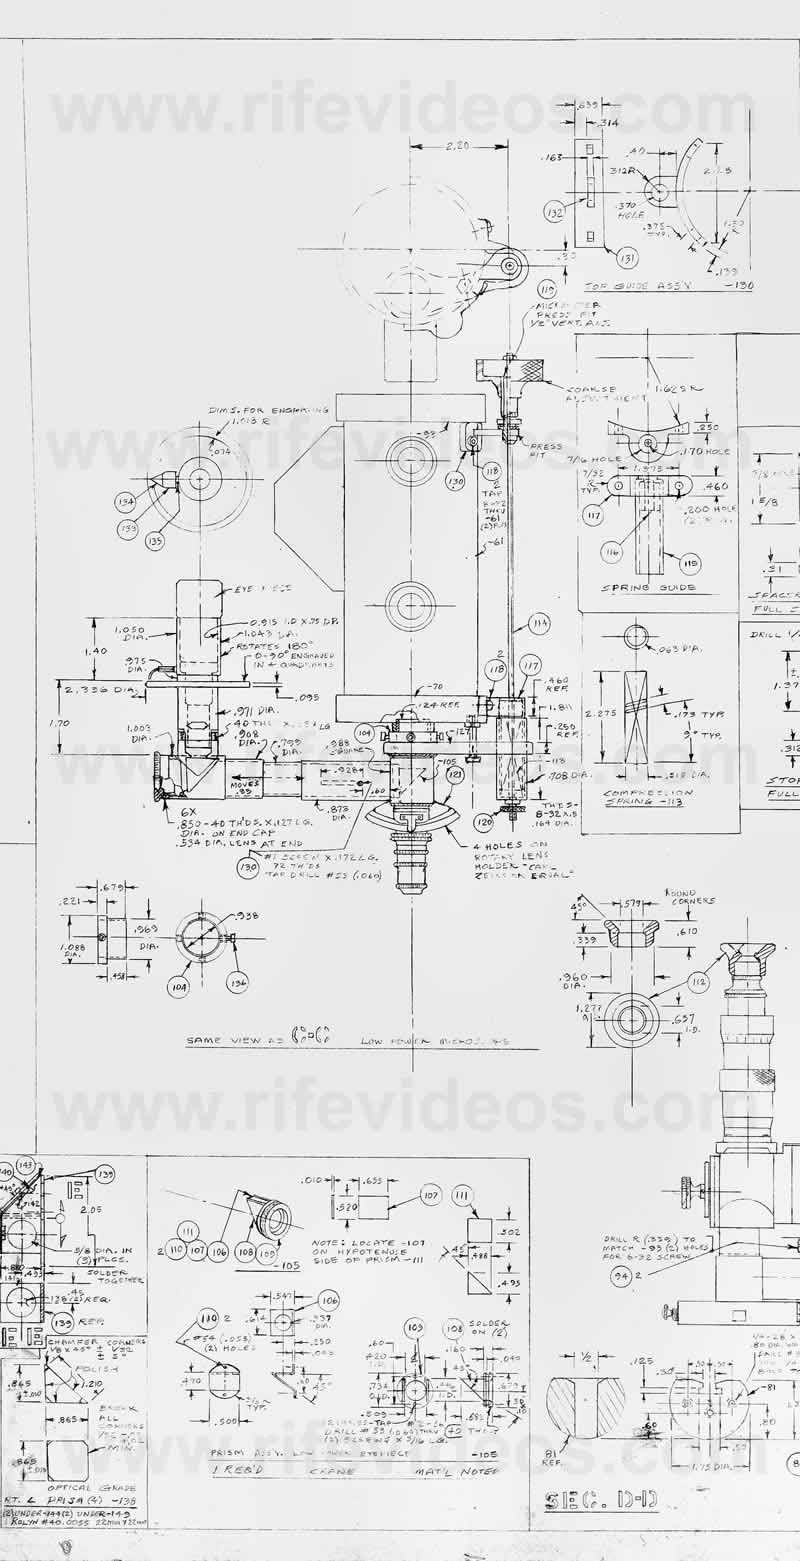 Universal microscope blueprint 2 royal raymond rife pinterest universal microscope blueprint 2 malvernweather Images